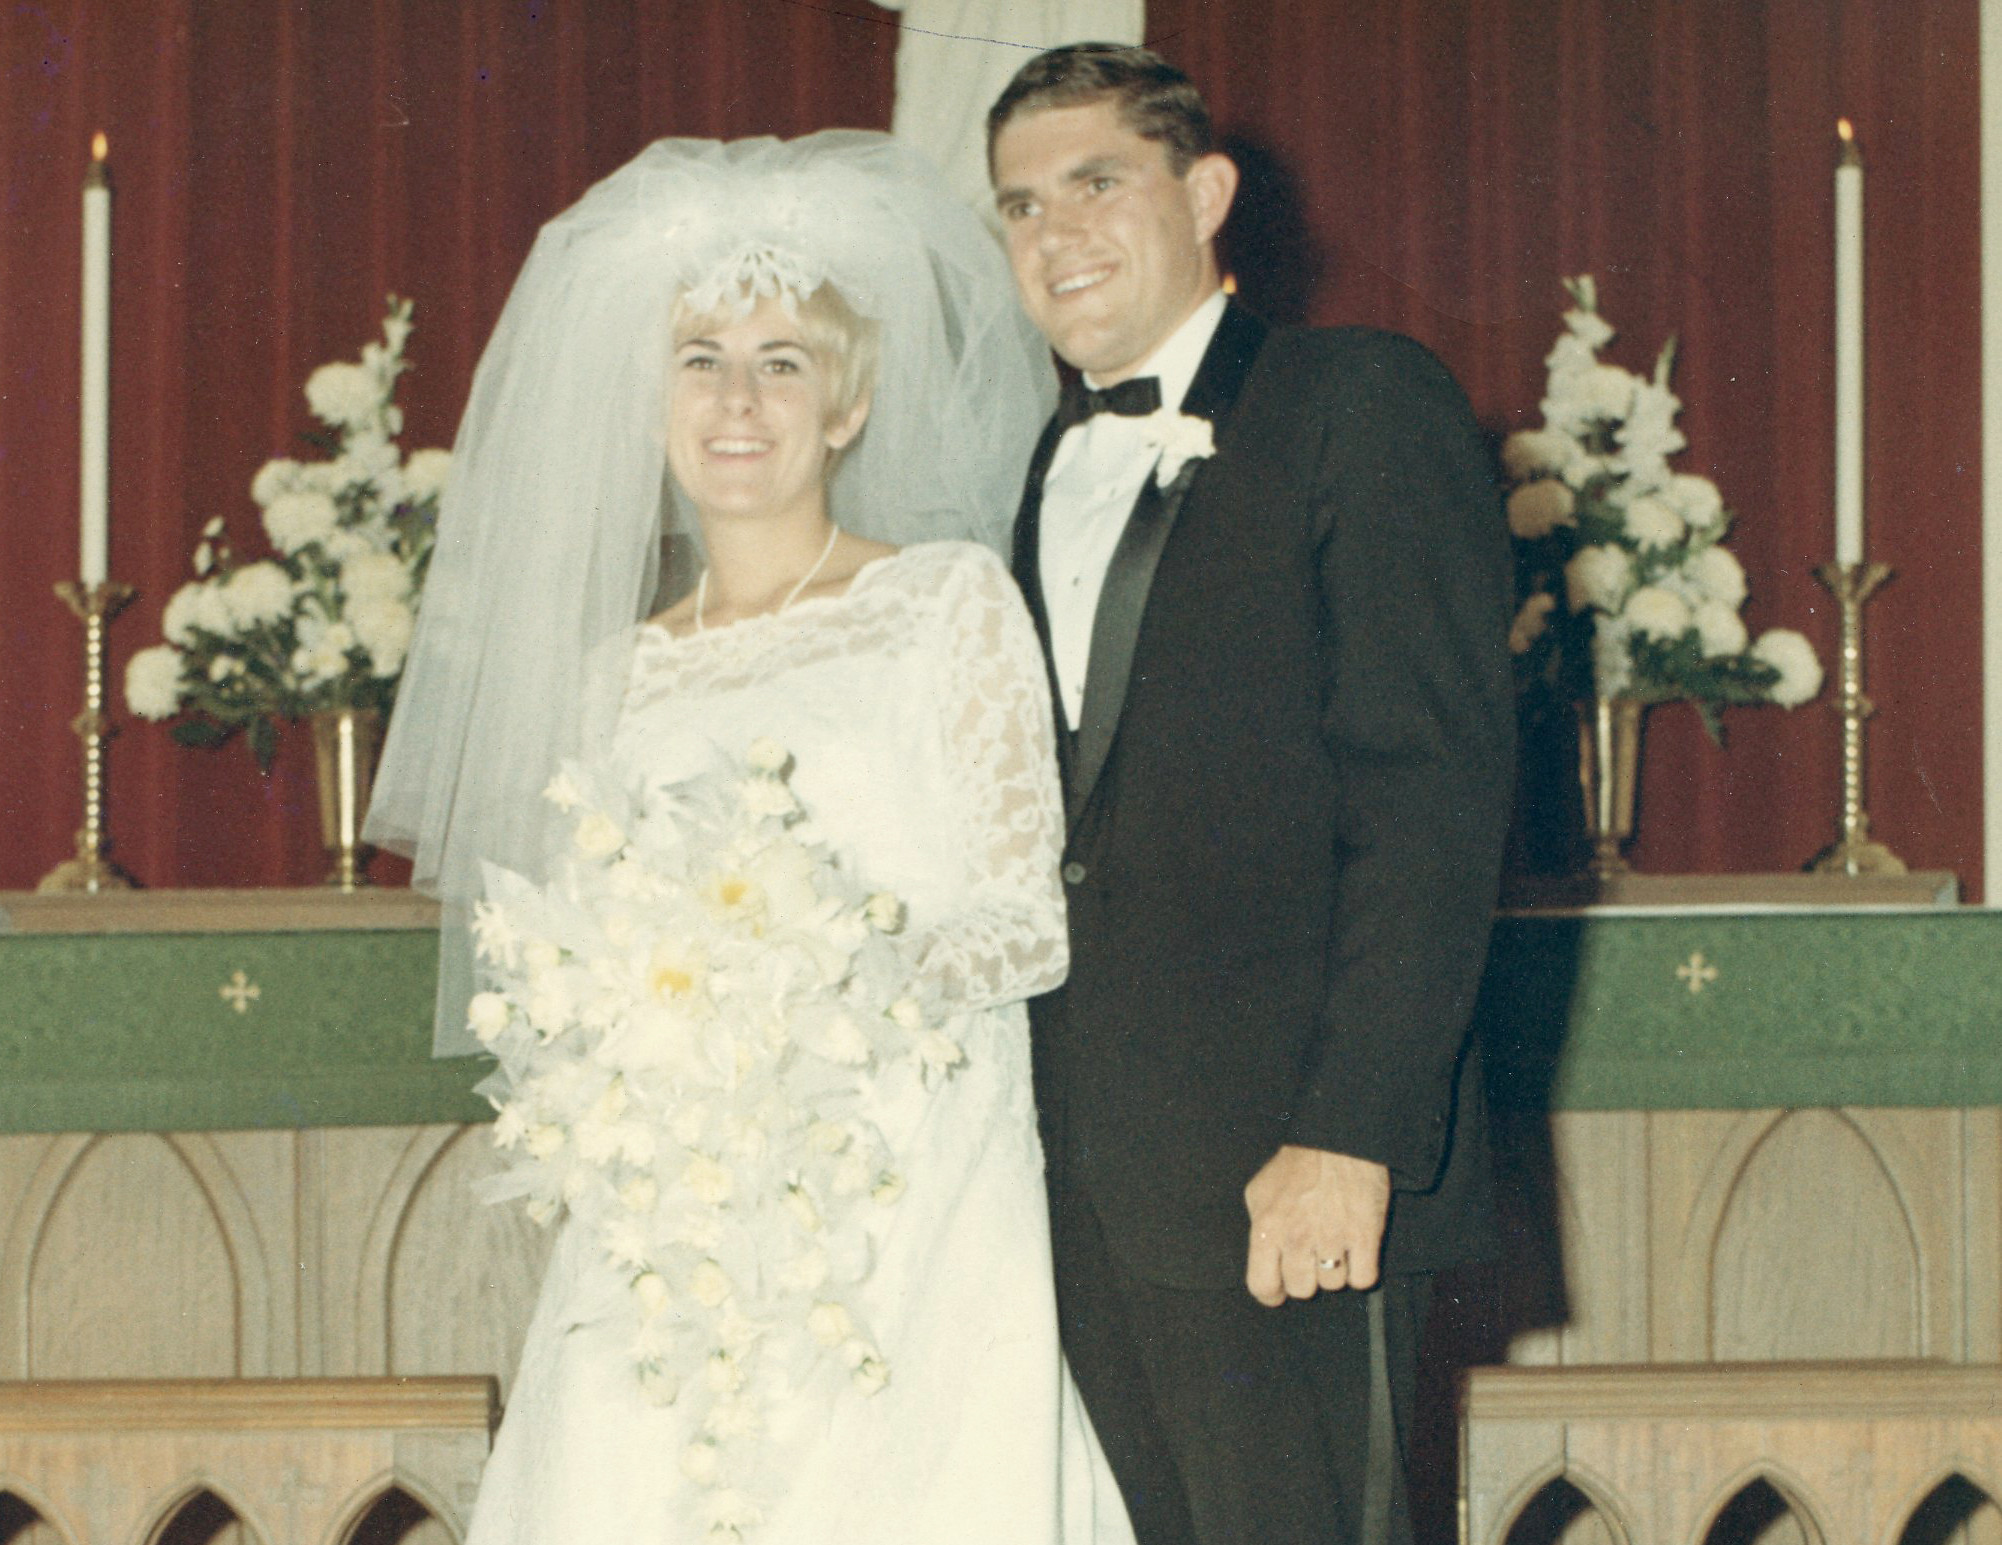 Eileen and Dave Castberg's wedding day.